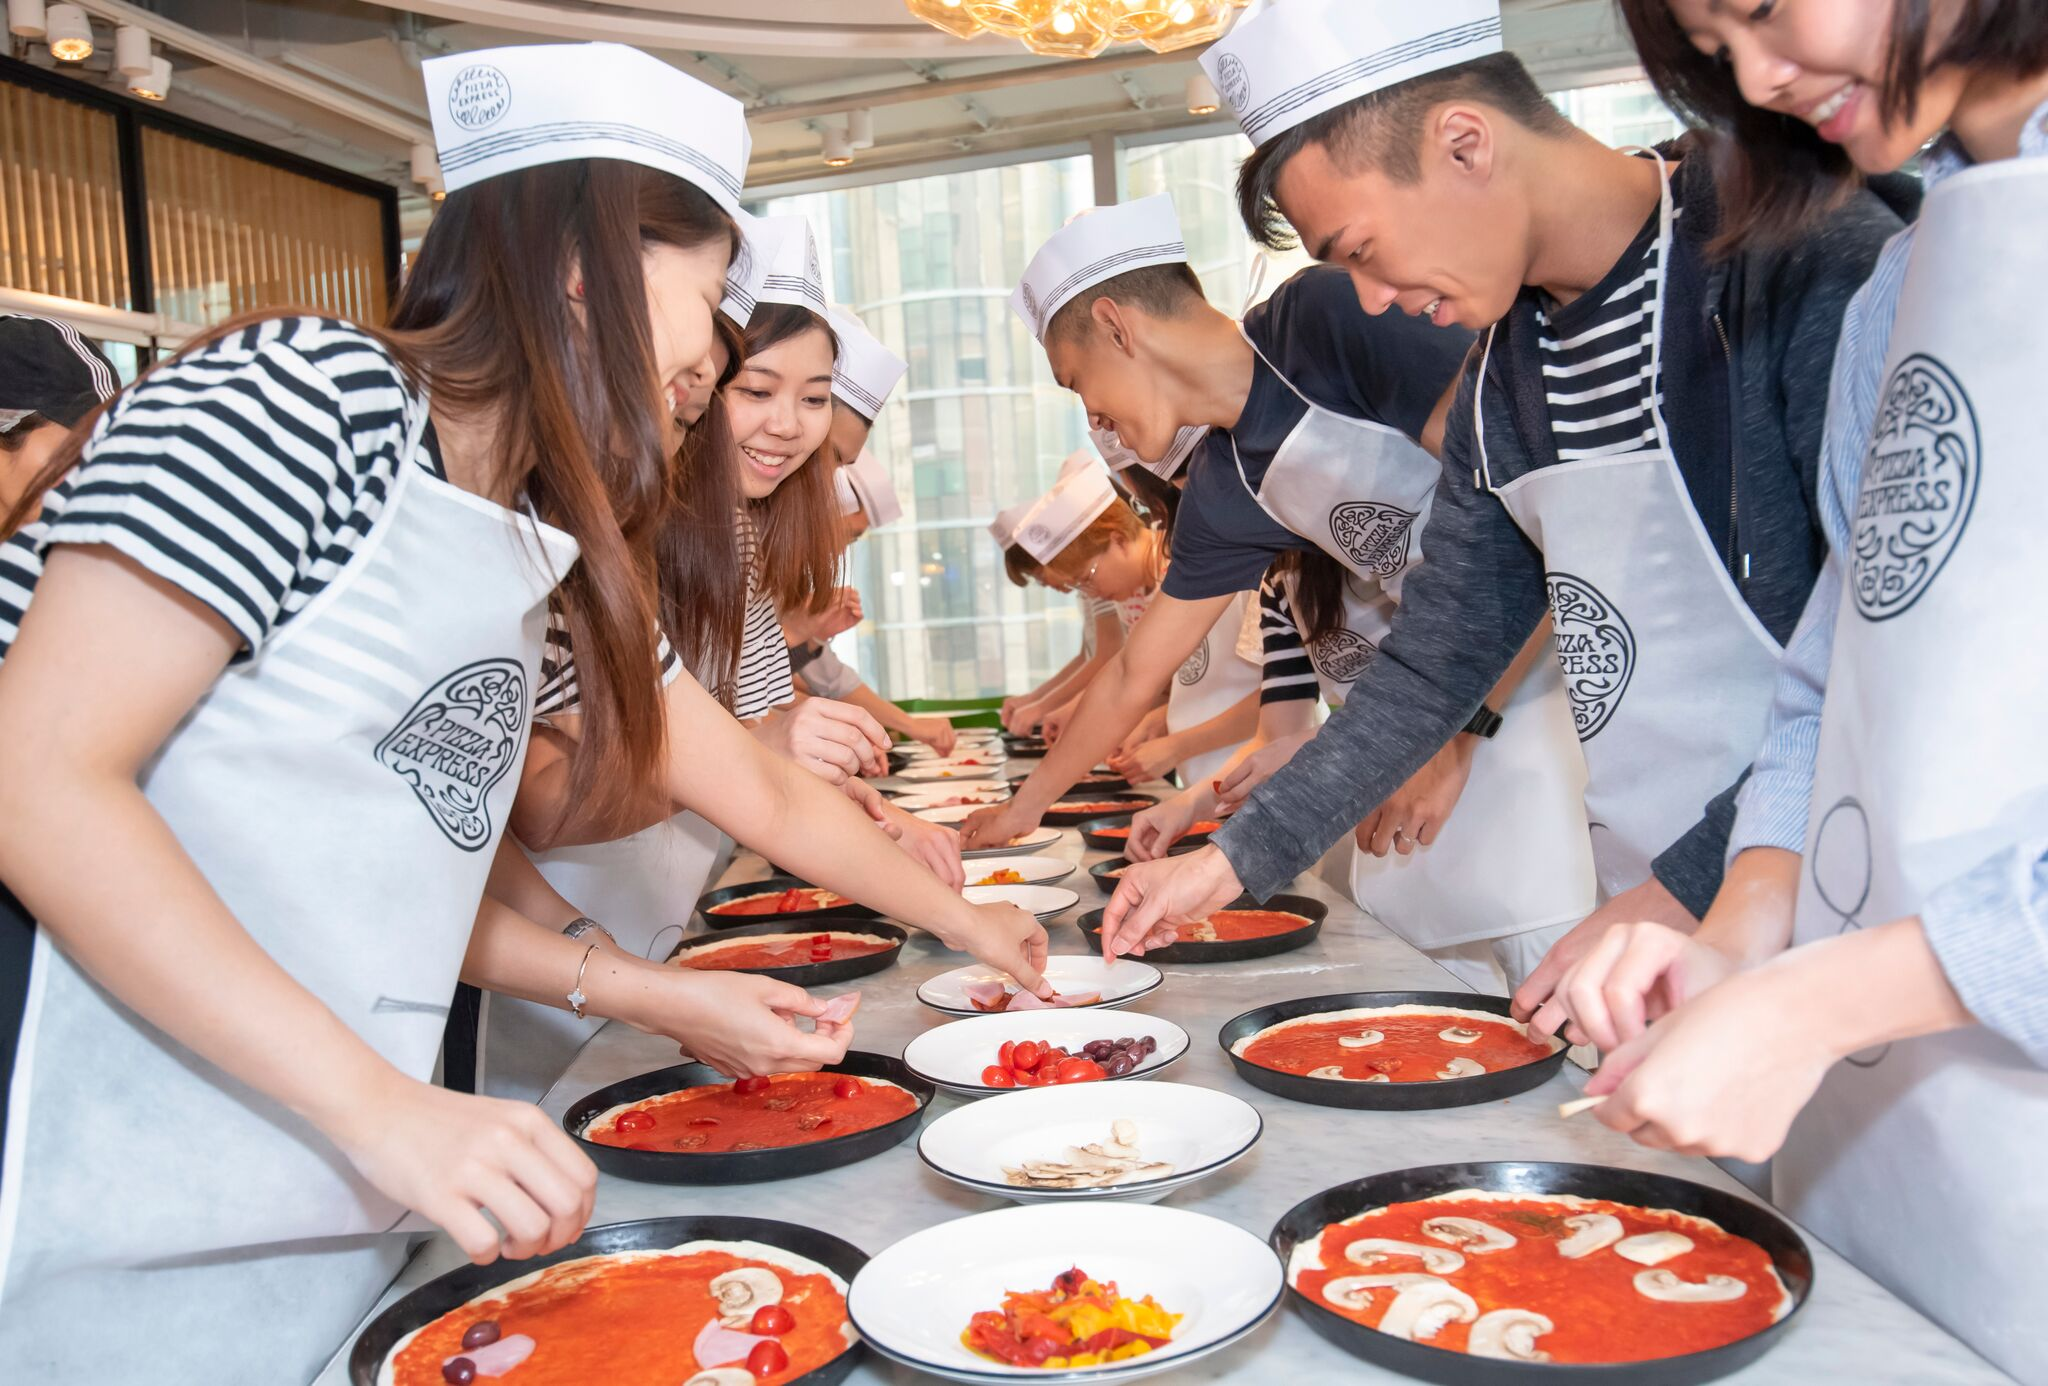 Dough-tossing is a 'Pizza' Cake? Enjoy Extraordinary Family Fun With Pizza Making! - ART FOOD - K11